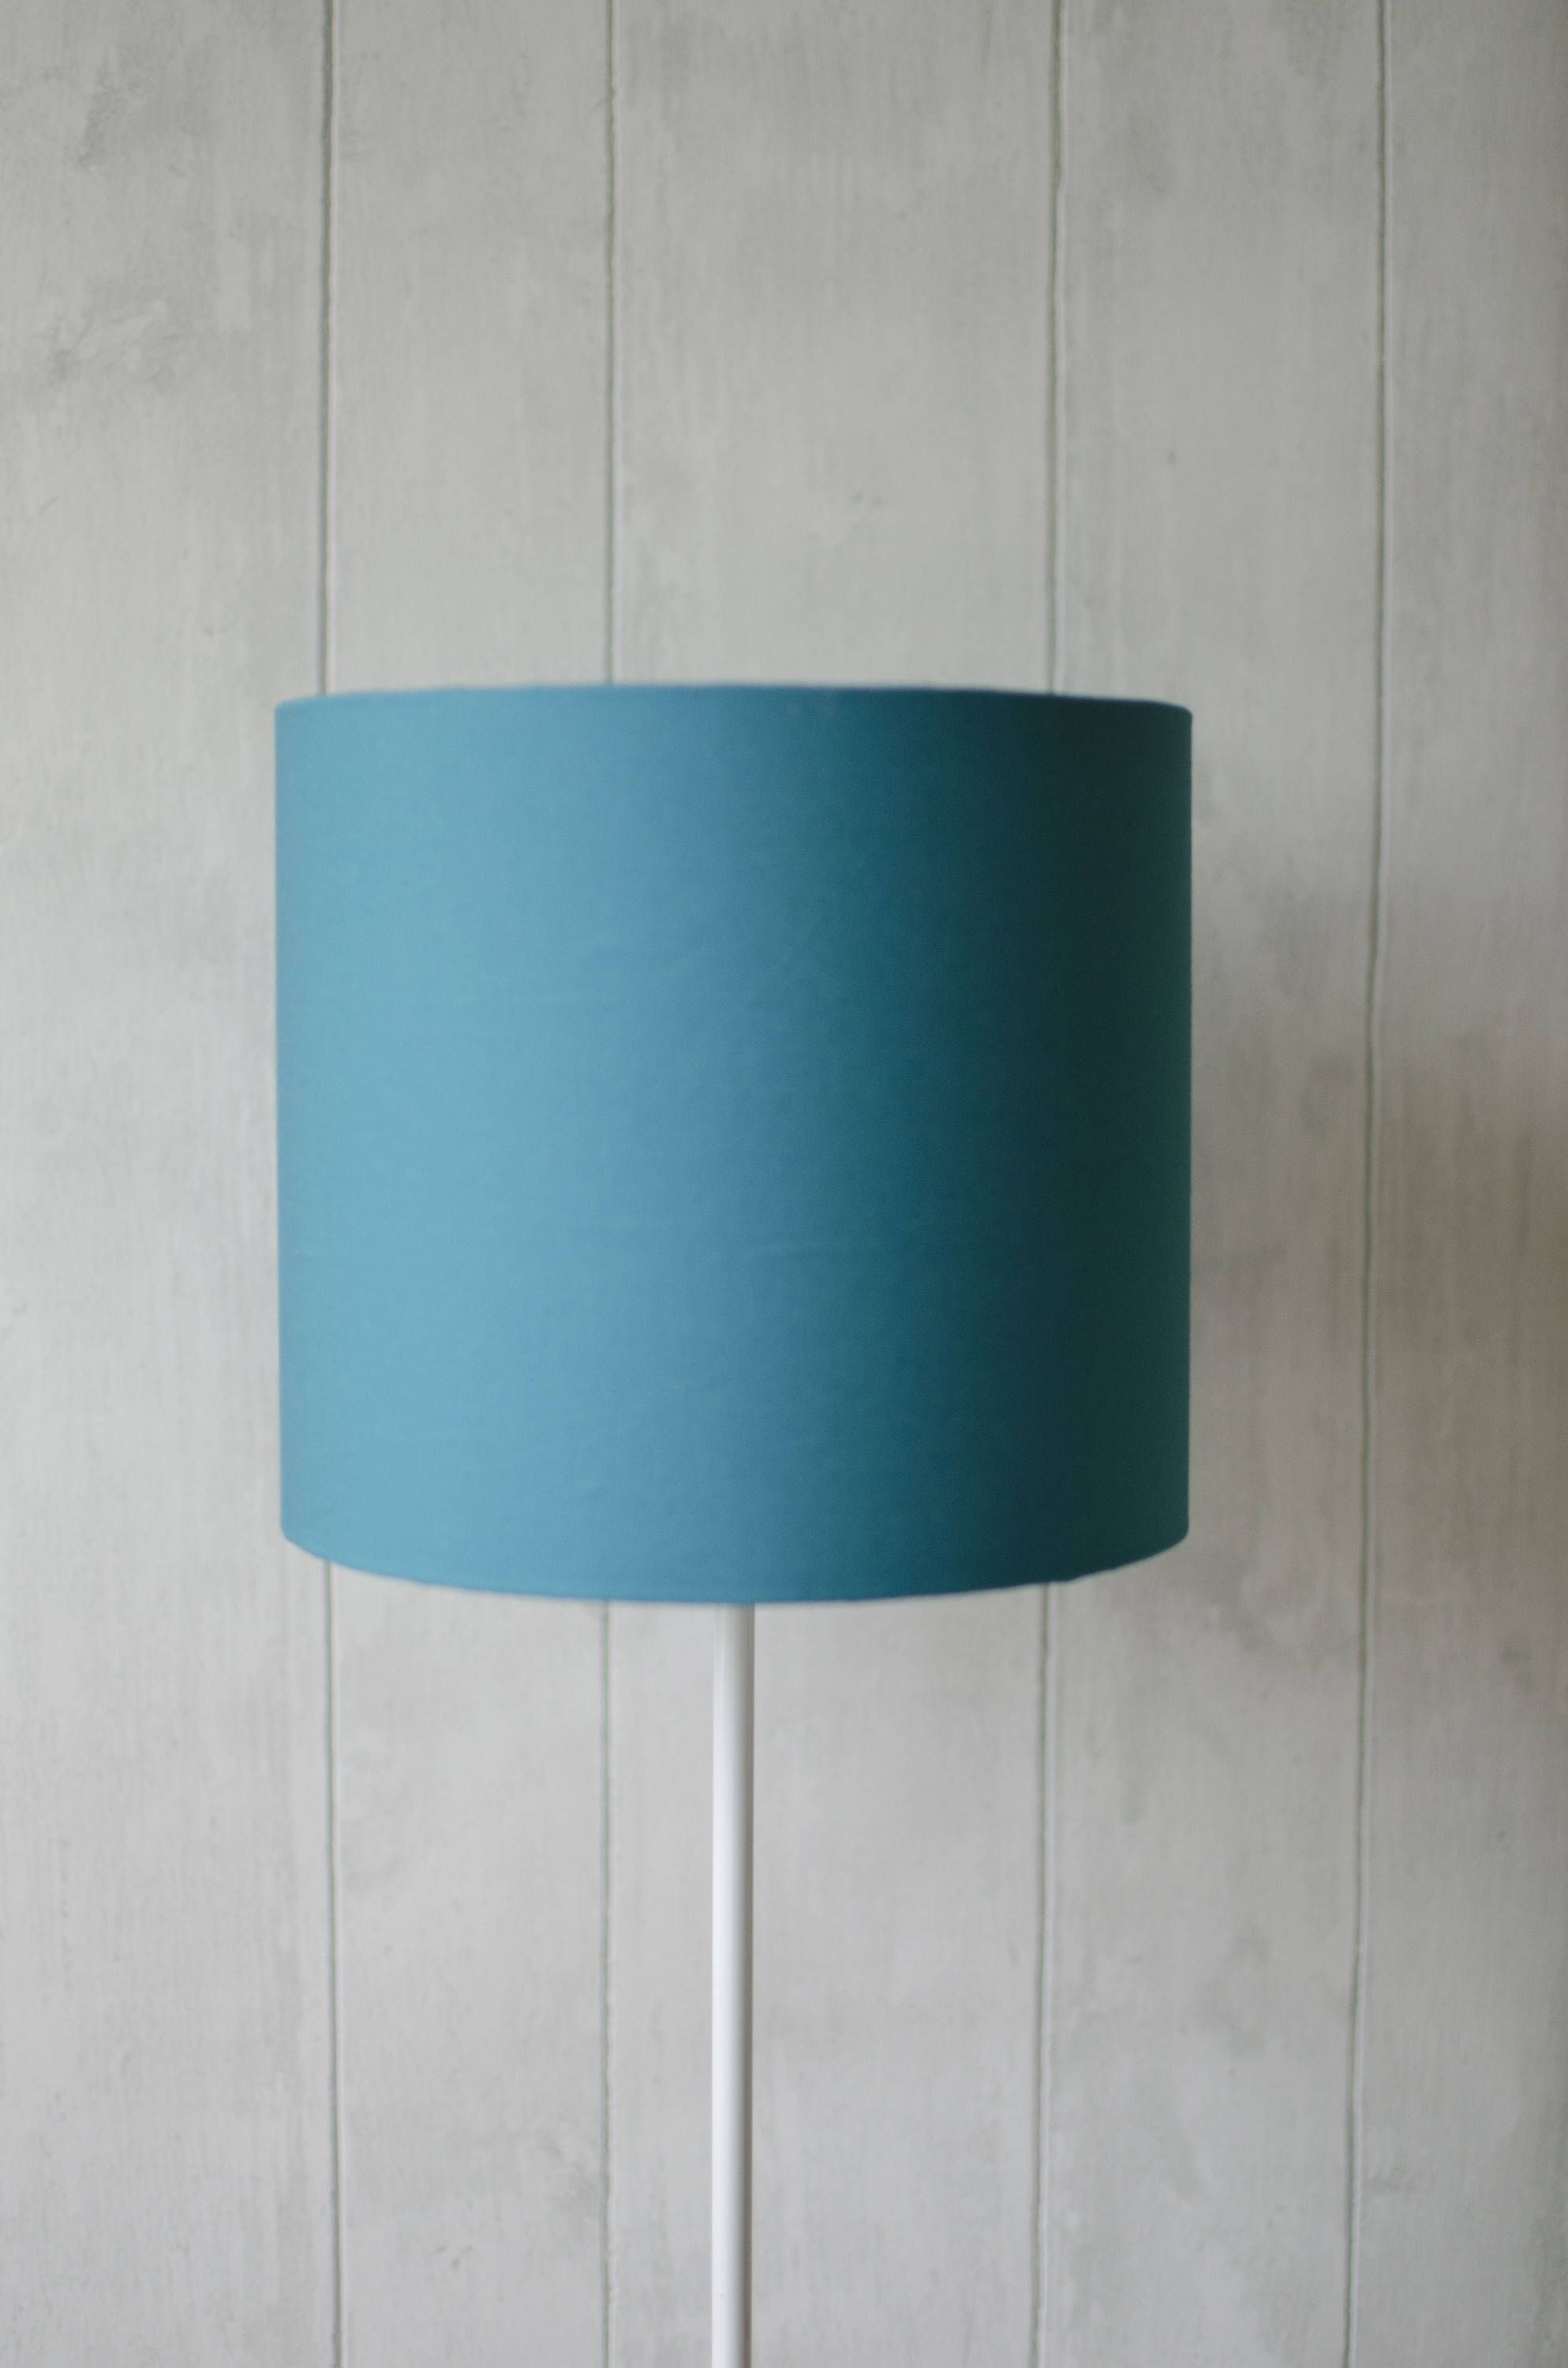 Turquoise Lamp Shade Turquoise Home Decor Simple Lamp Plain